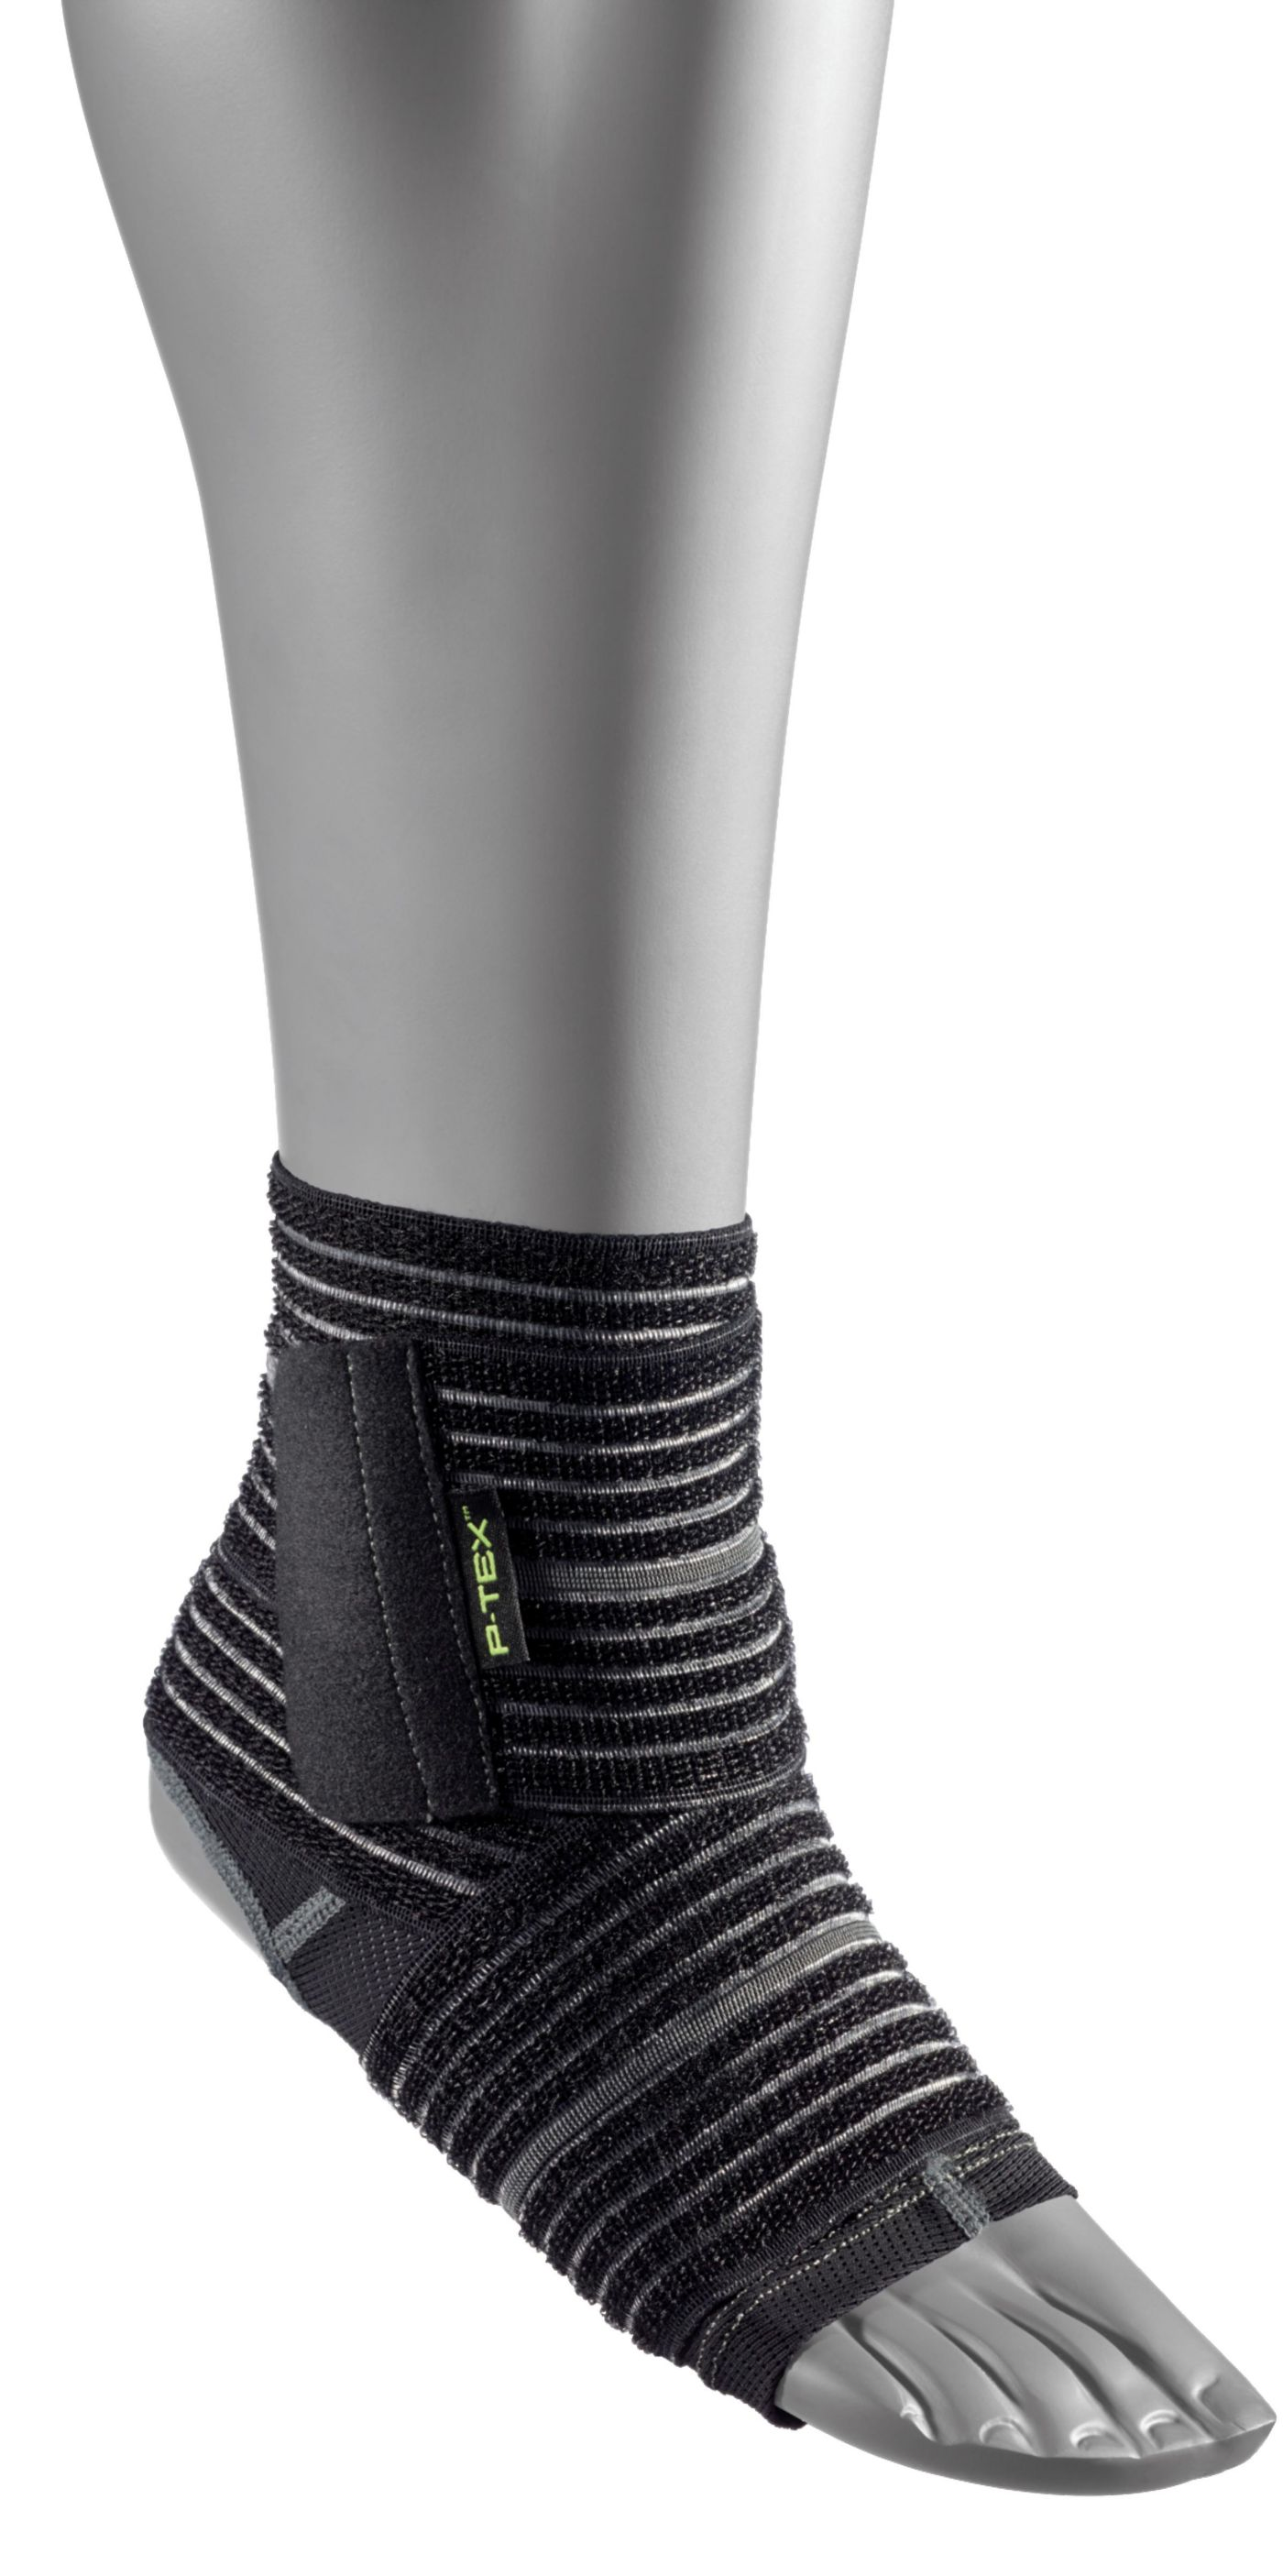 p tex ankle sleeve with stability wraps dick 39 s sporting goods